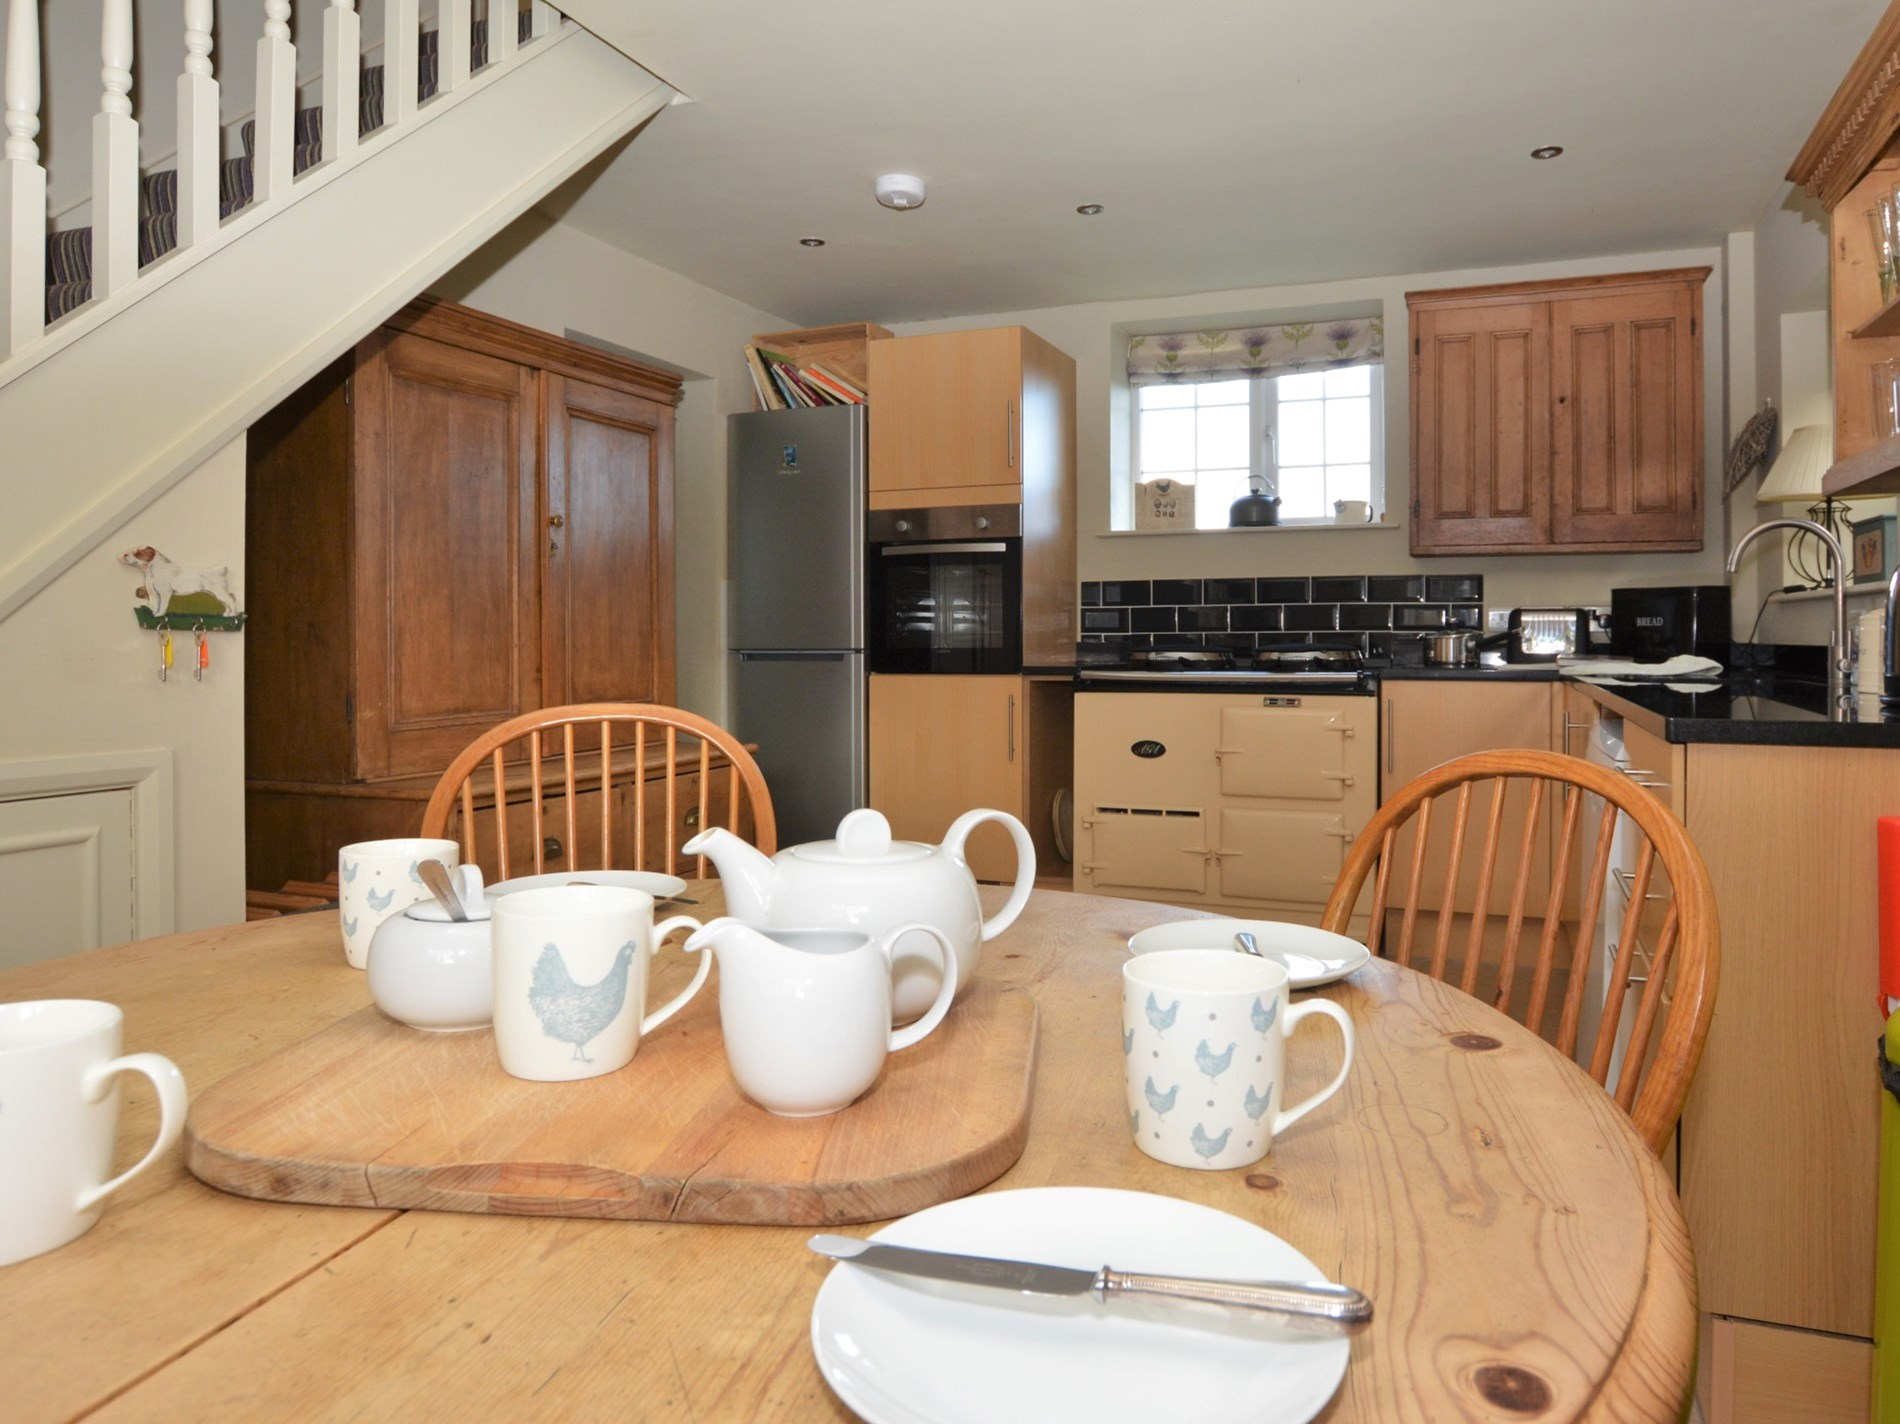 2 Bedroom Cottage in Scarborough, Yorkshire Dales